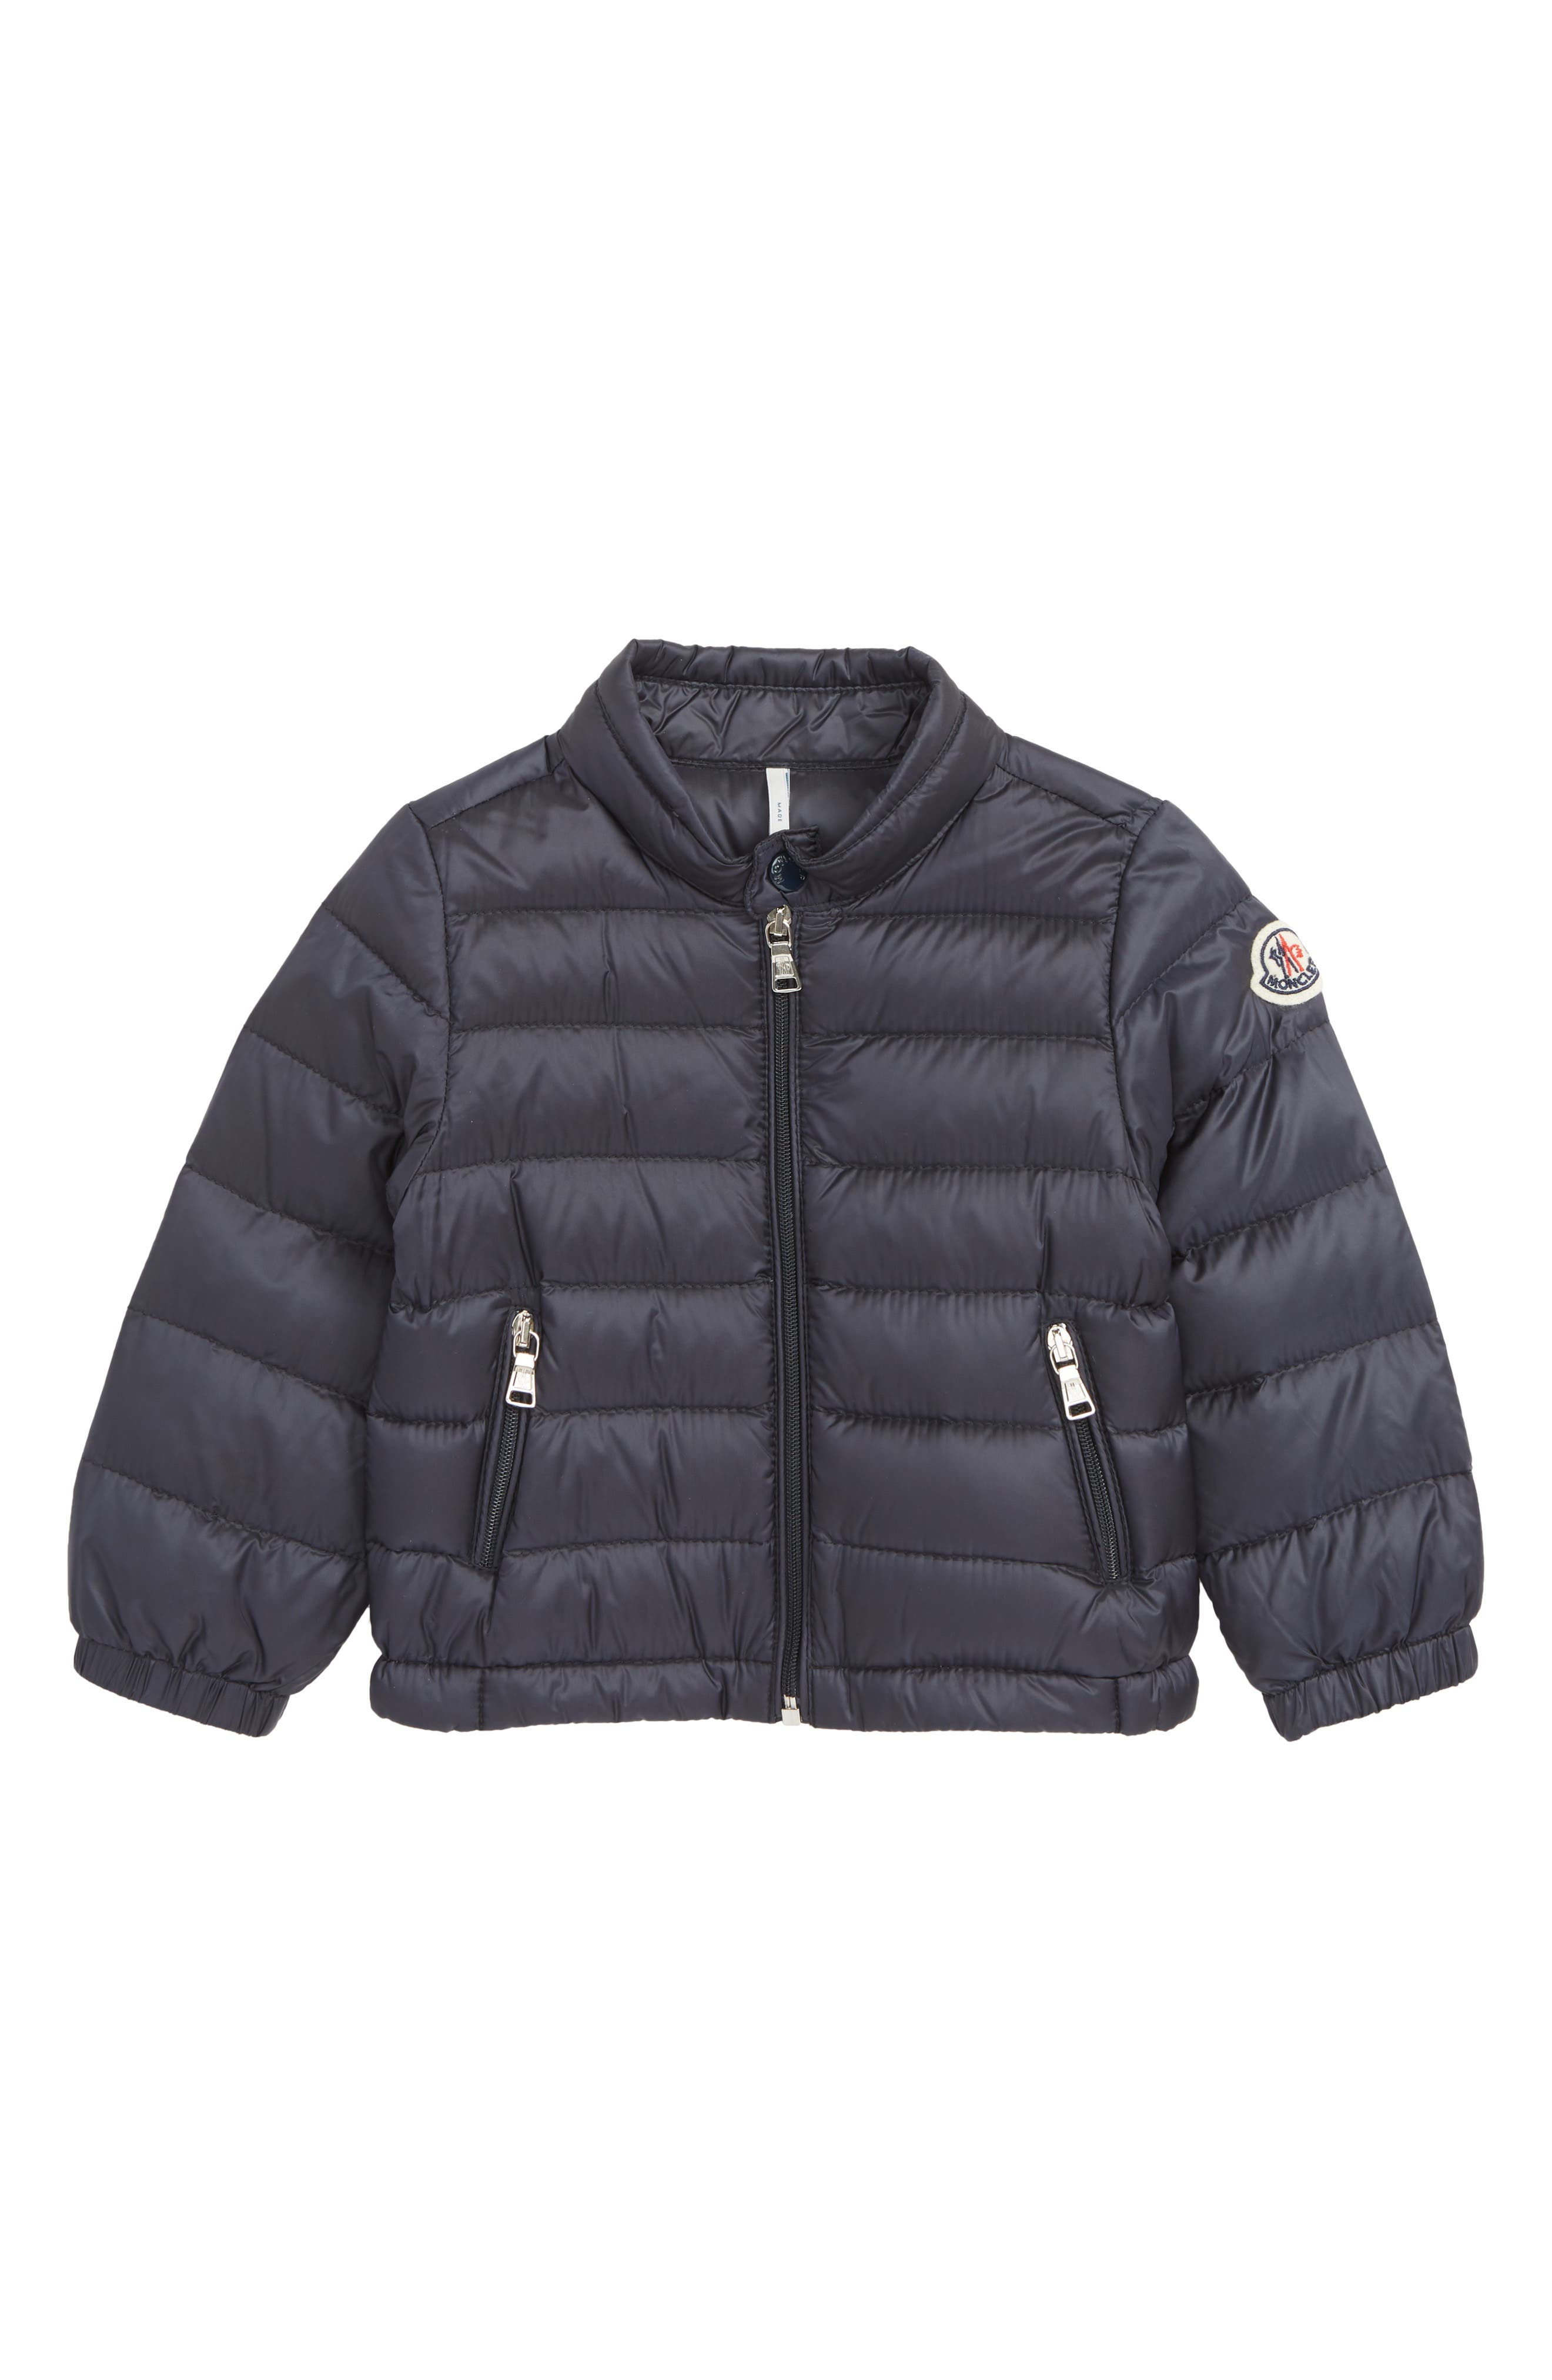 MONCLER, Acorus Channel Quilted Down Moto Jacket, Main thumbnail 1, color, NAVY